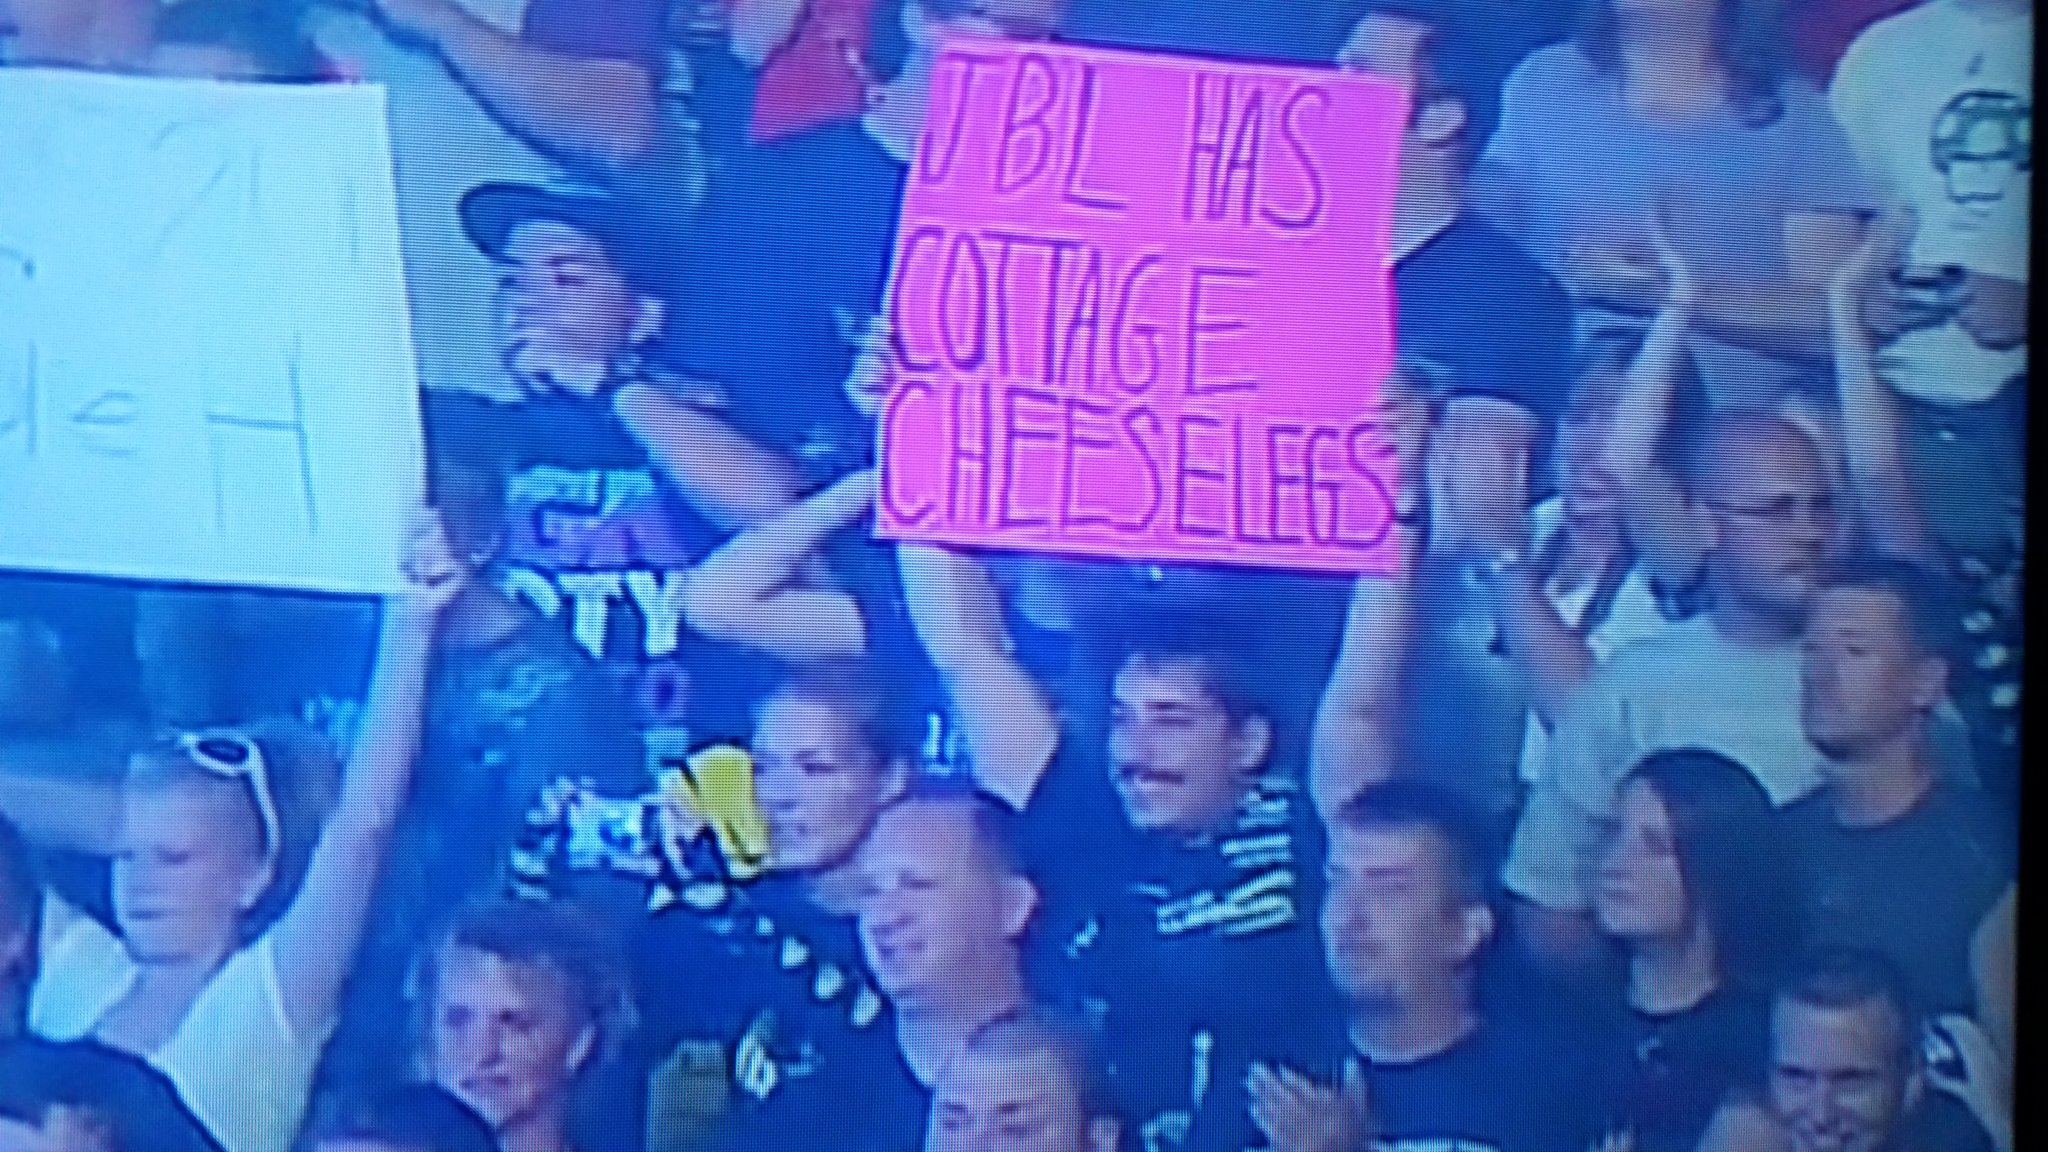 Sign of the Night